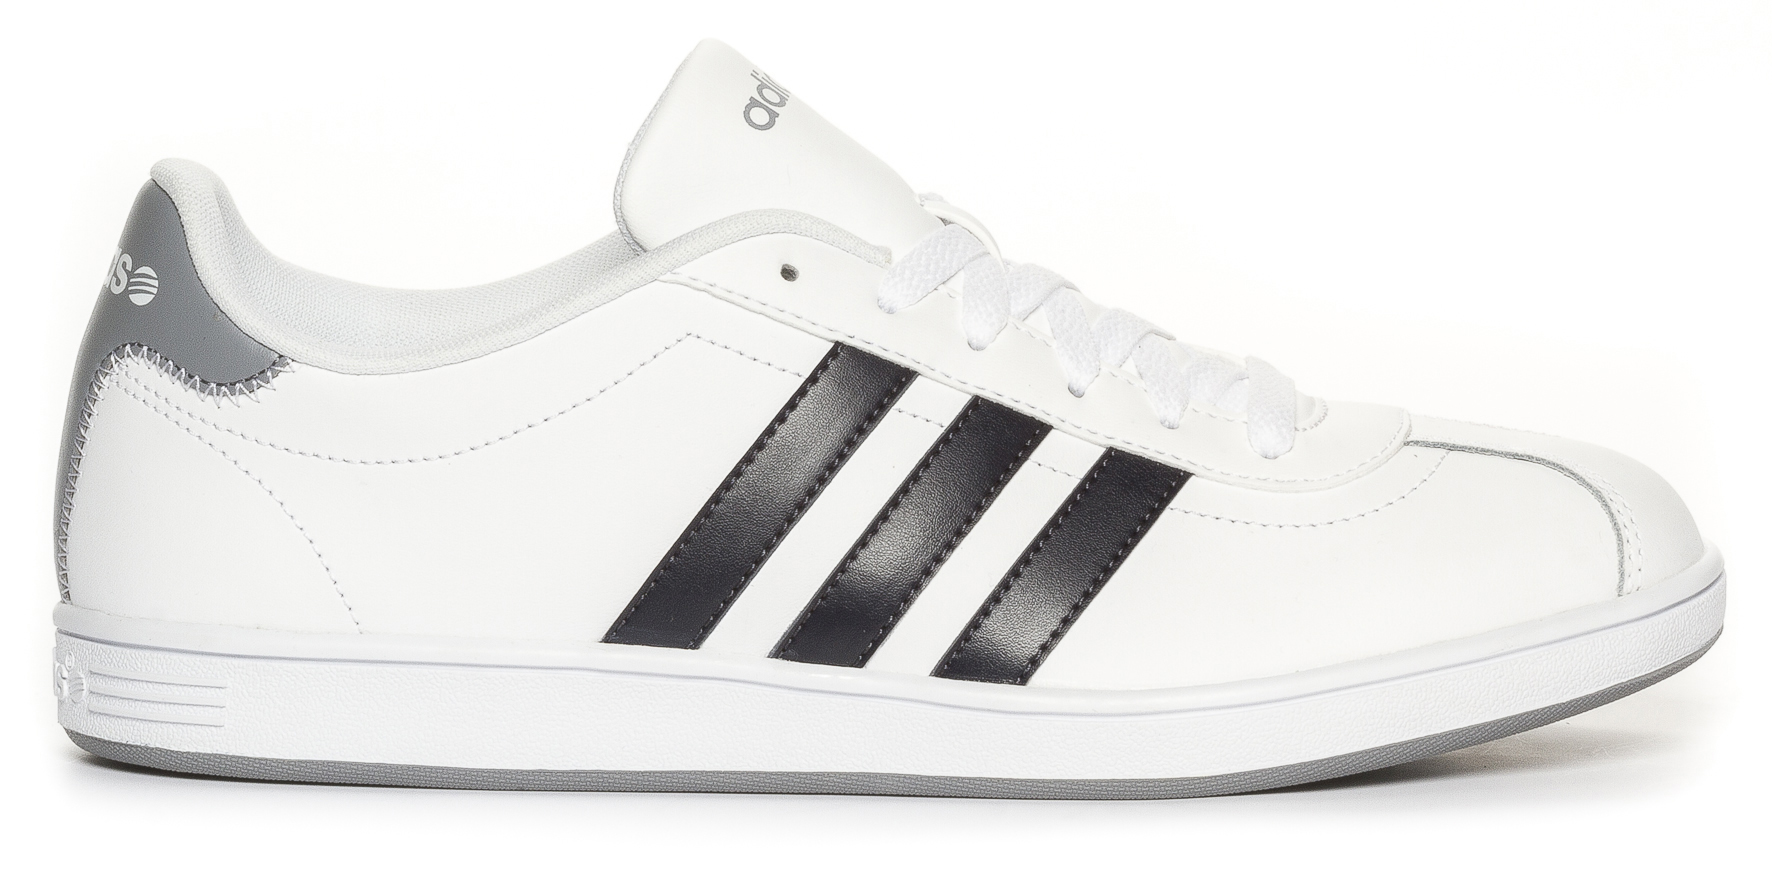 Adidas Neo Grey Sport Shoes